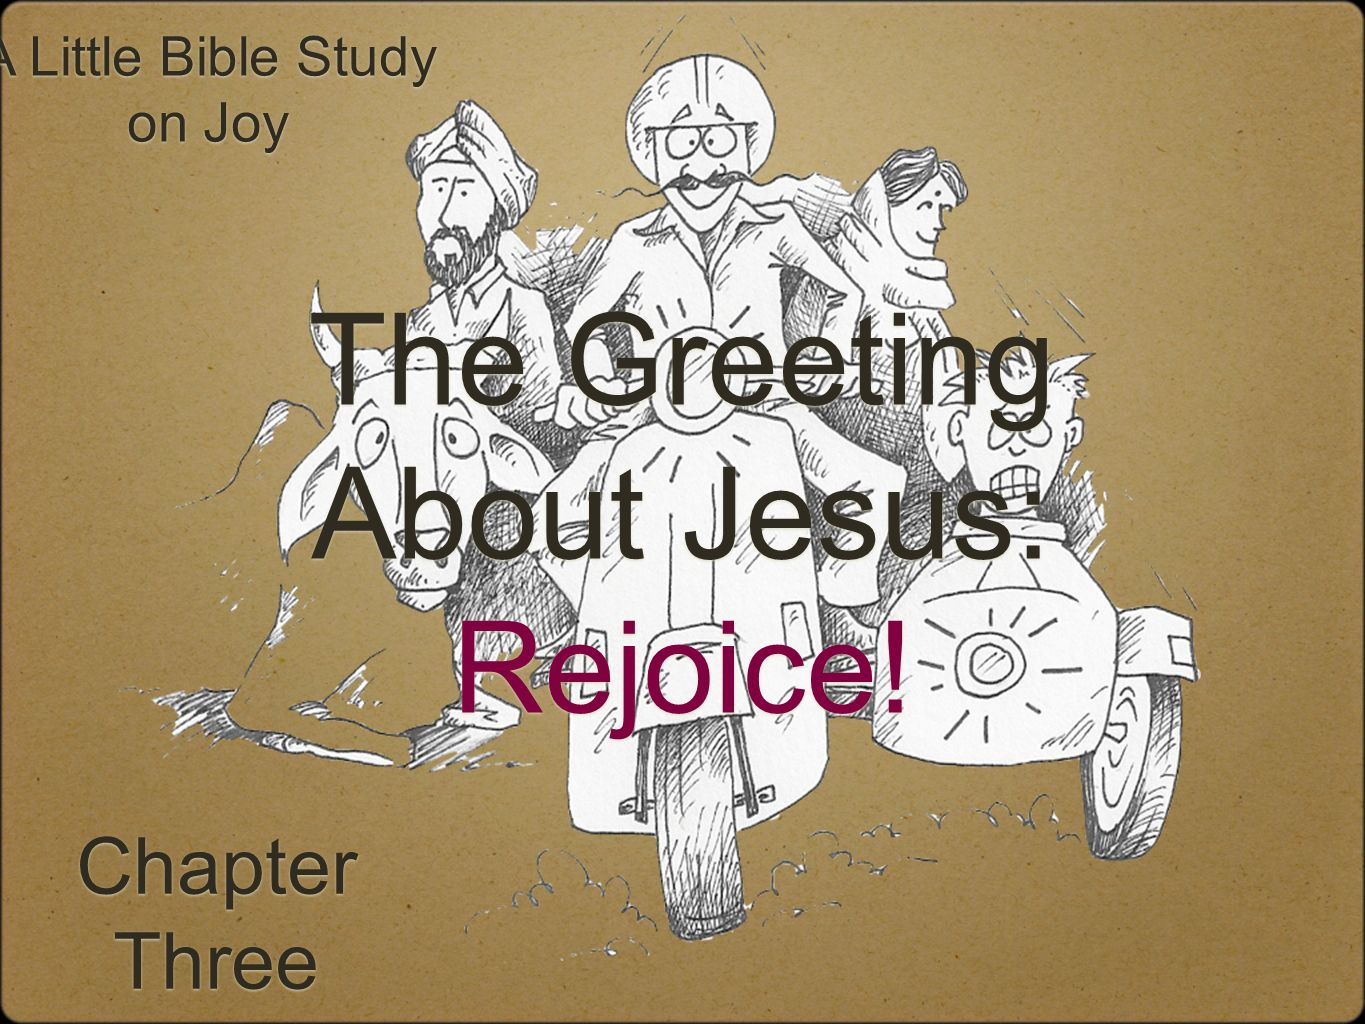 Chapter Three Chapter Three A Little Bible Study on Joy The Greeting About Jesus: Rejoice!